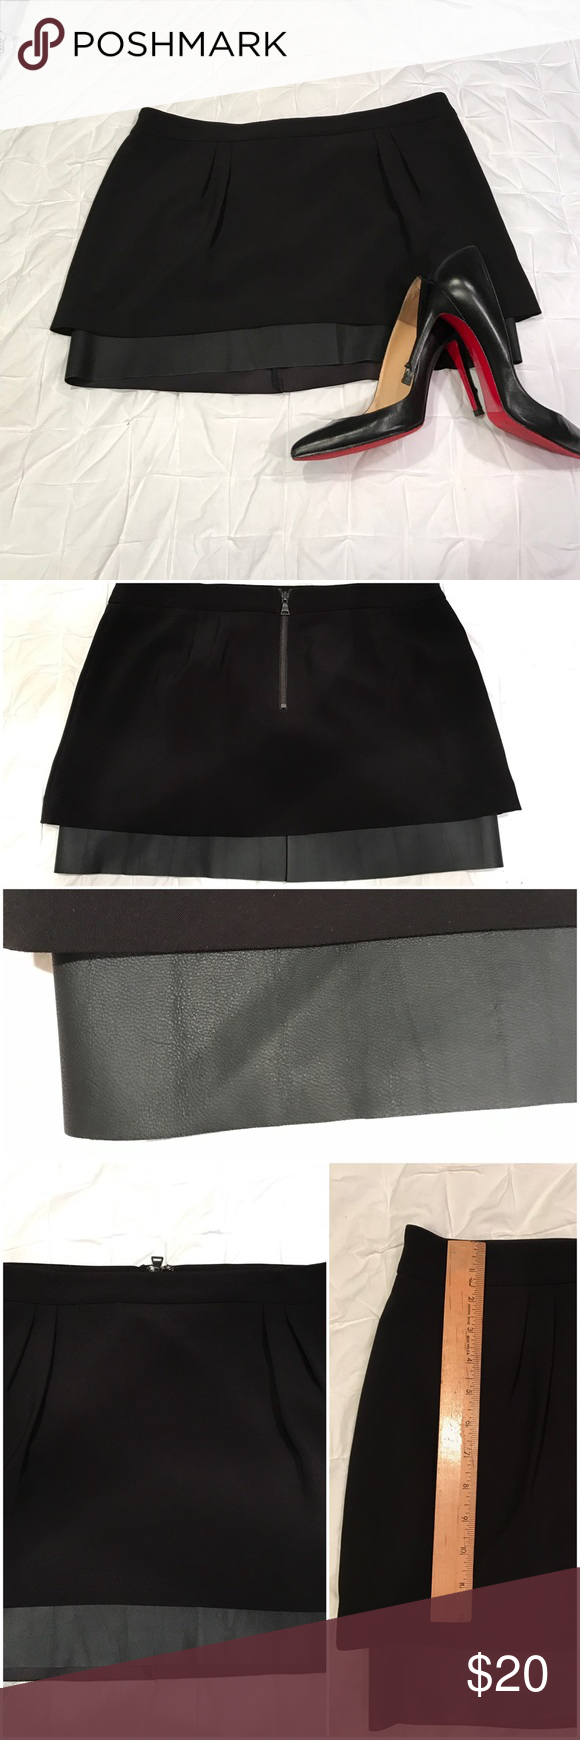 Express Mini Skirt with Faux Leather Trim Express black mini skirt with a pop of faux leather- super sexy! The faux leather trim (100% polyester with polyurethane coating) is on the bottom of the lining. The skirt/shell is made of 93% polyester, 7% spandex. Zip back, size 12. I only wore this once and forgot I had it, which means it's time she gets a new home to be rightfully shown off! Express Skirts Mini